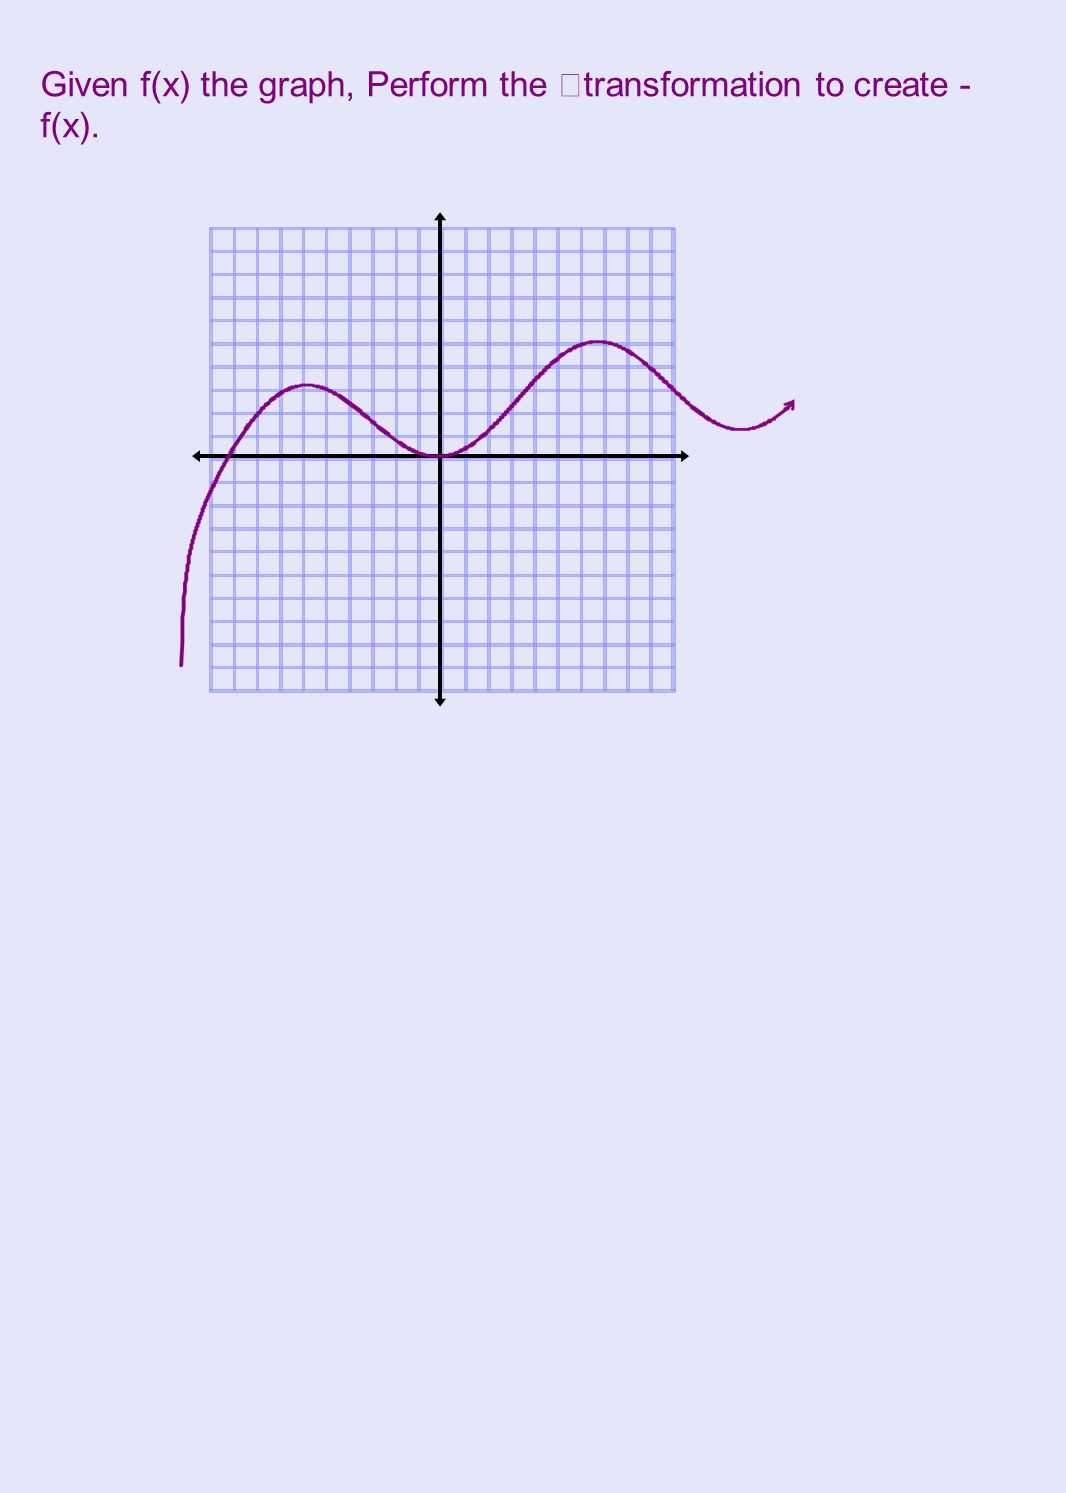 Given f(x) the graph, Perform the transformation to create - f(x).